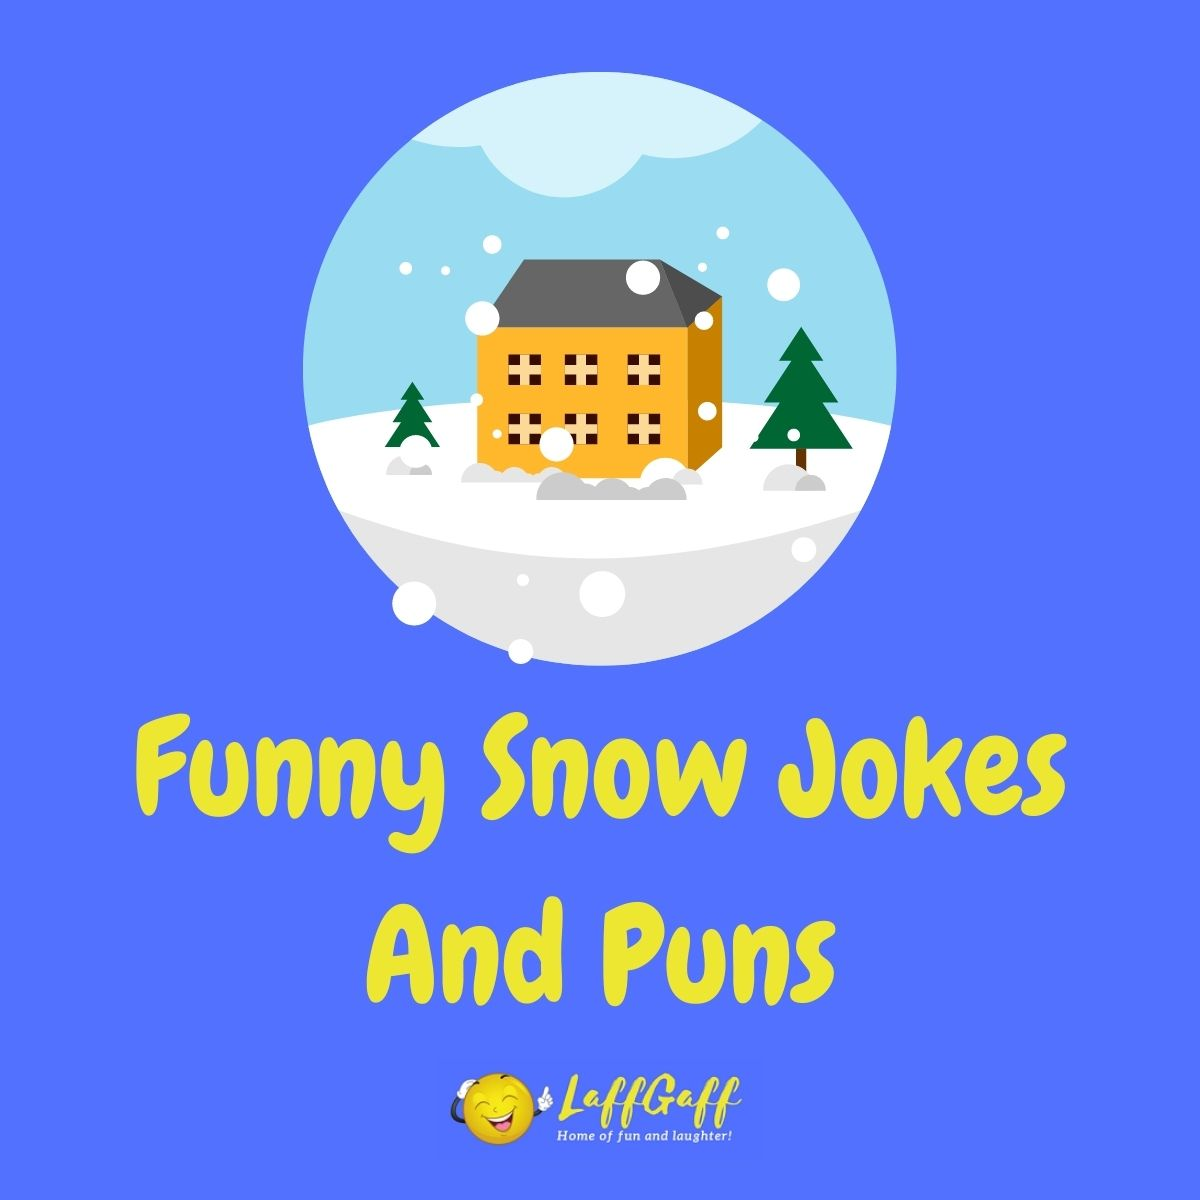 Featured image for a page of funny snow jokes and puns.